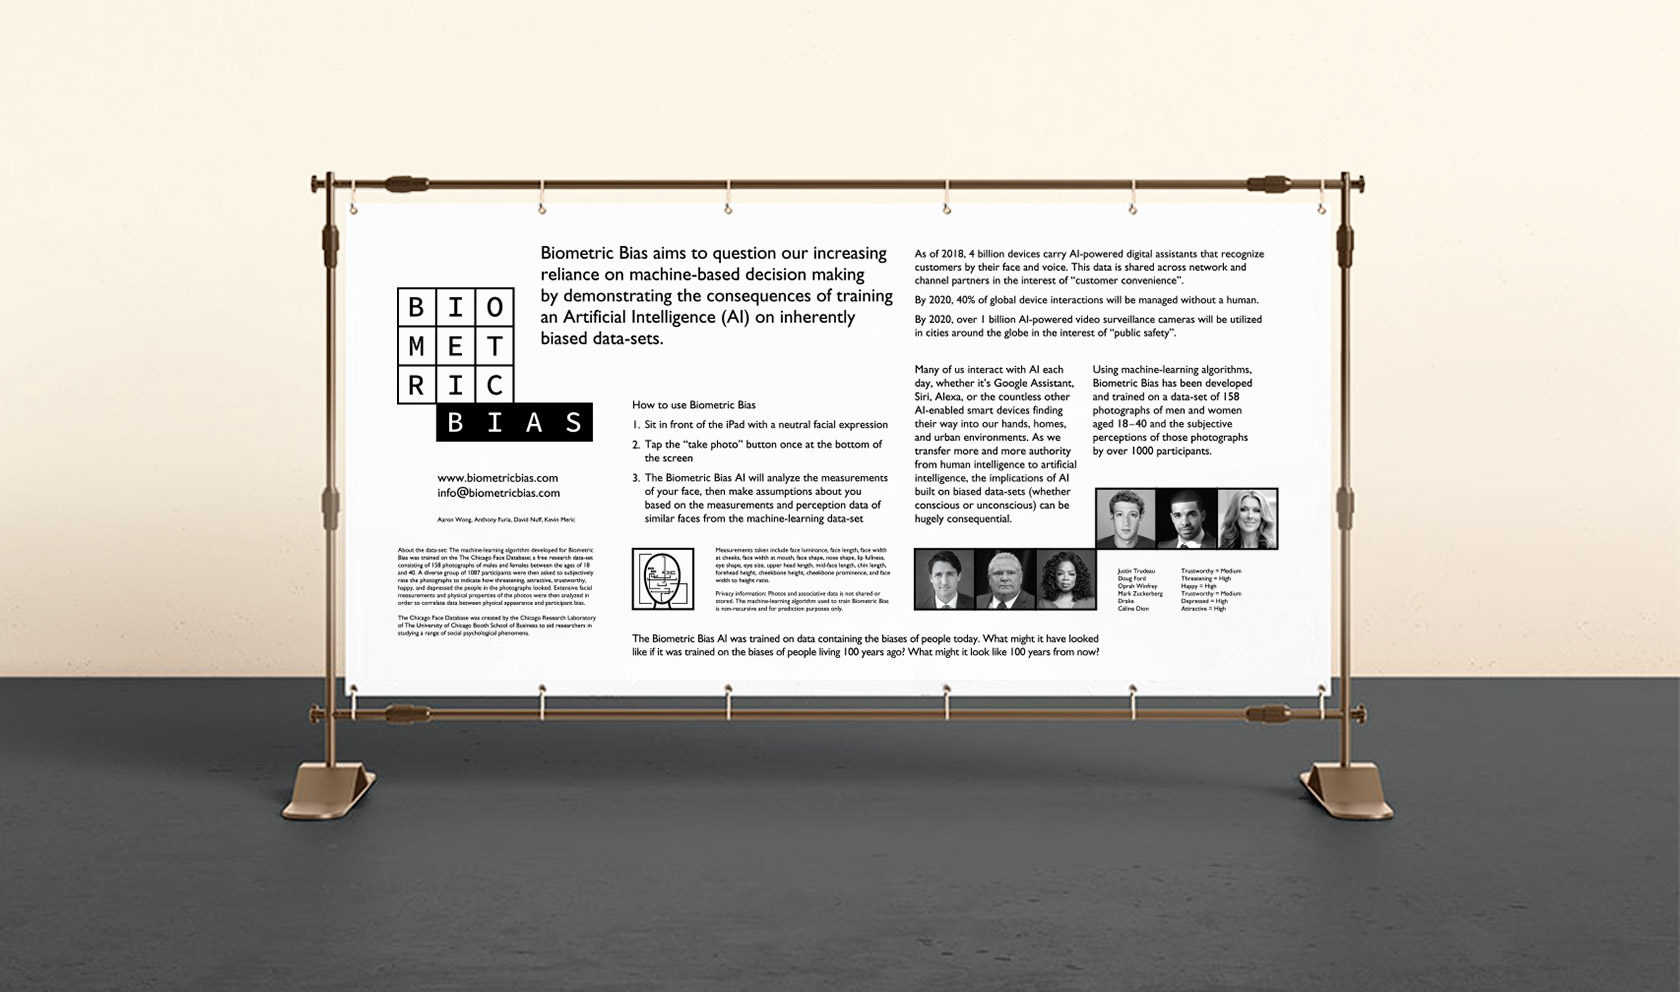 Biometric Bias Conference Signage design by Furia